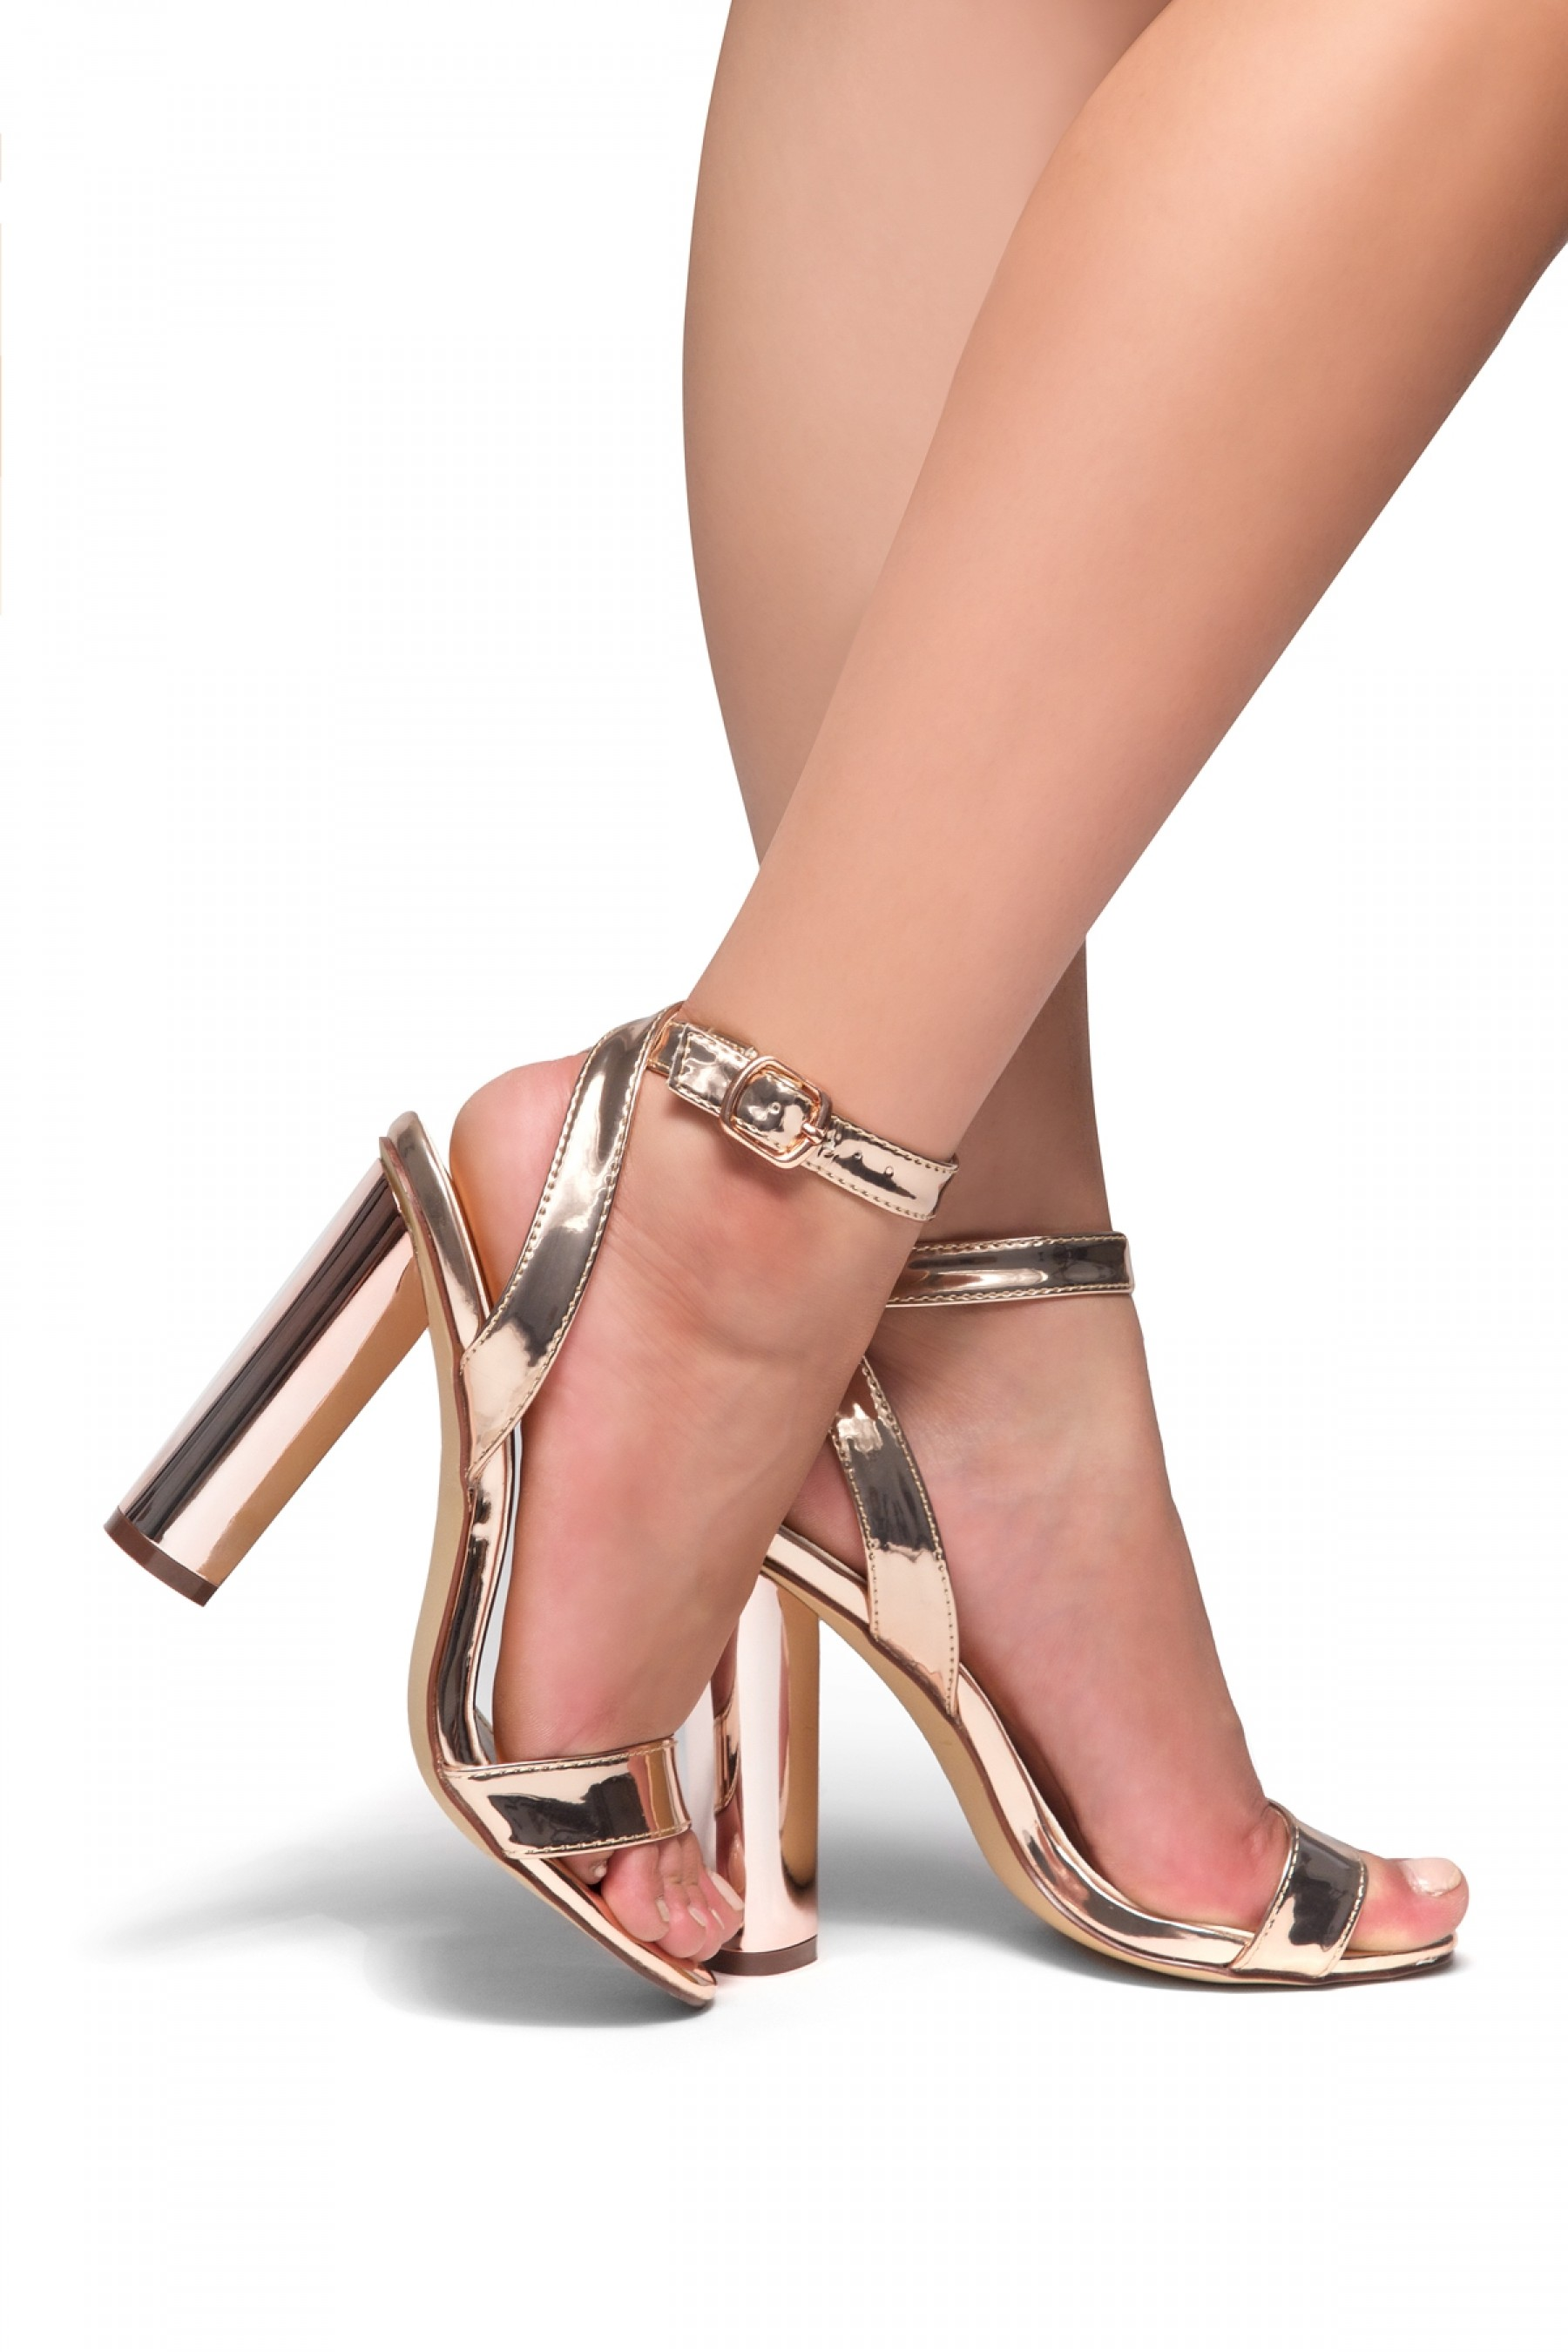 ankle diamante anklet enposh products strap gold heels britanny rose